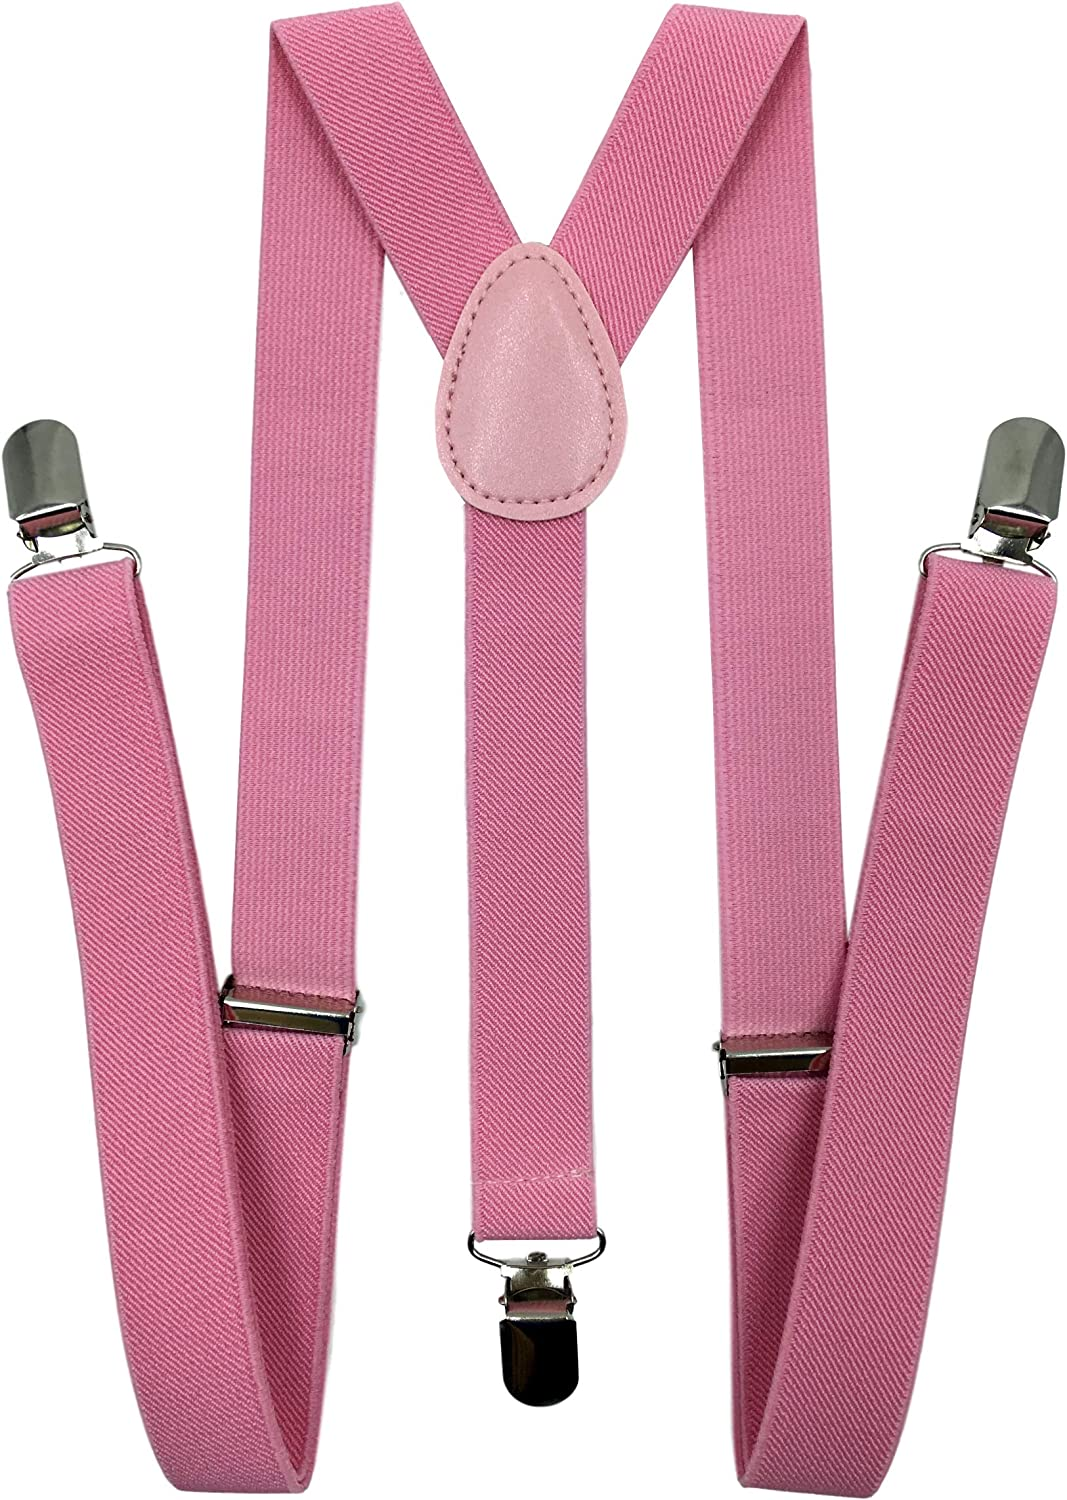 Coster Suspender Adjustable and Elastic Pant Braces for Men and Women